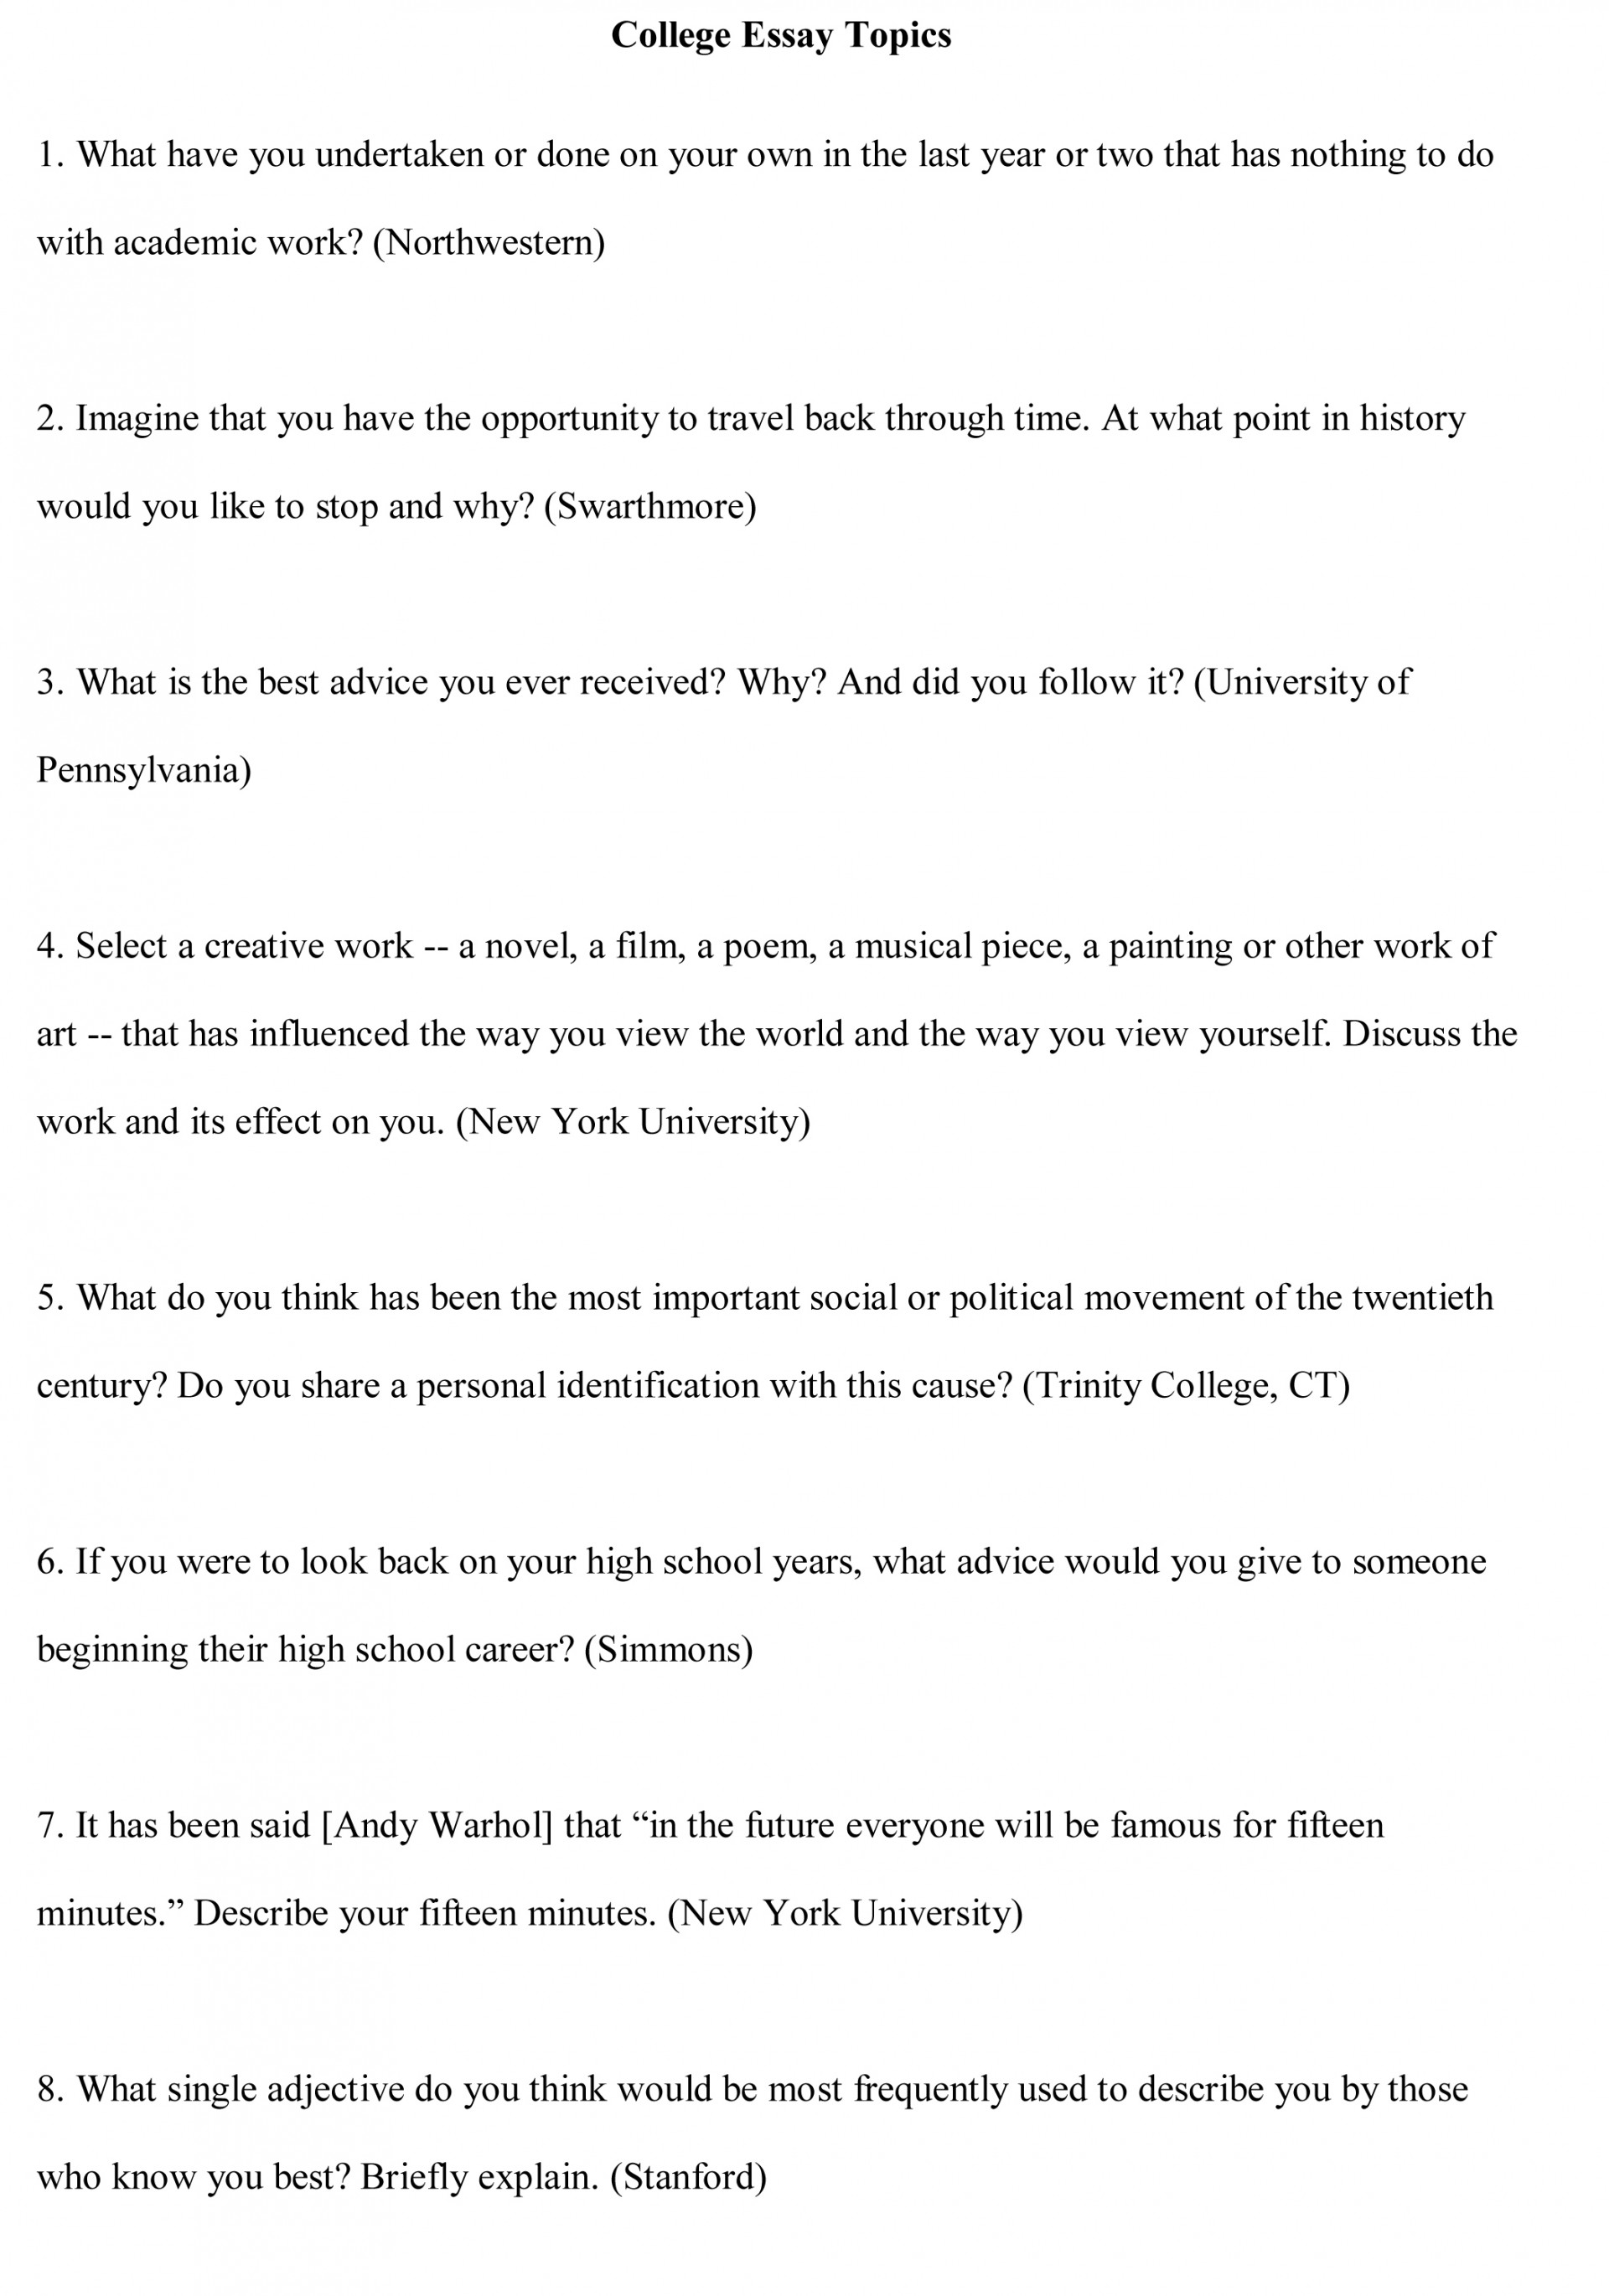 018 Essay Example College Topics Free Sample1 Wonderful Persuasive Argumentative Students Easy Level Speech 2018 1920